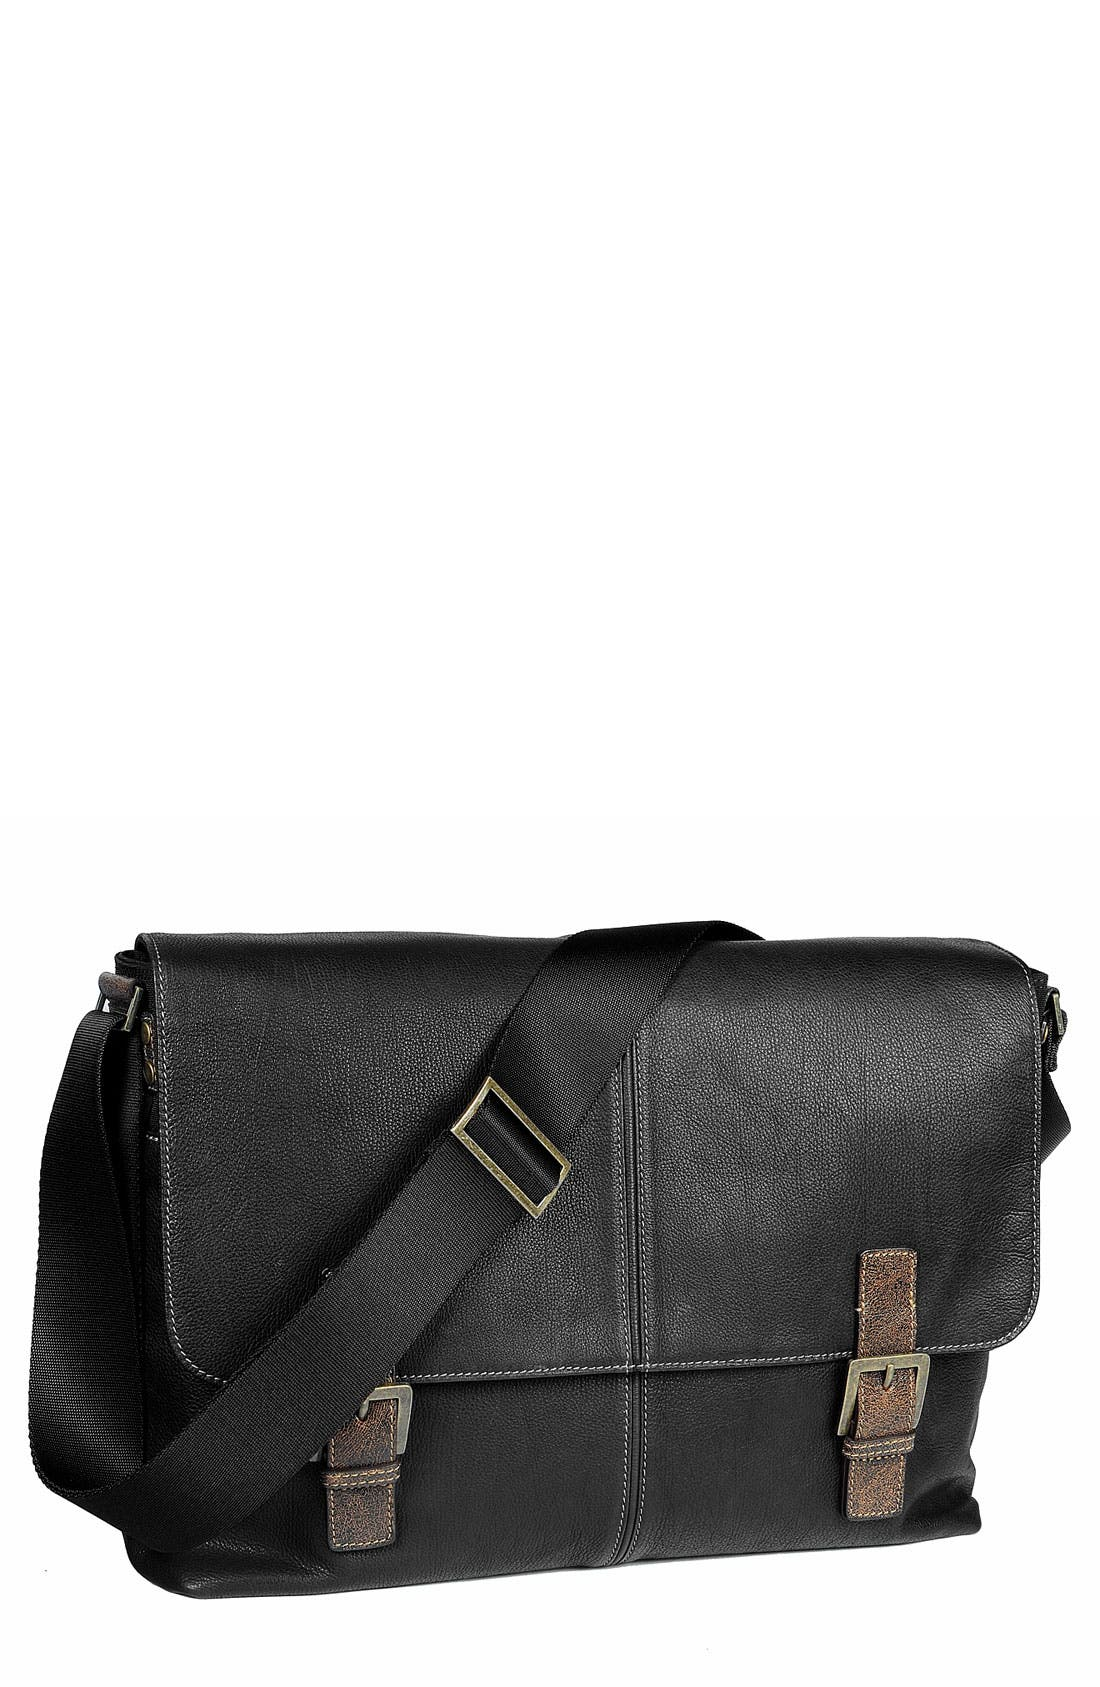 Main Image - Boconi Double Buckle Messenger Bag